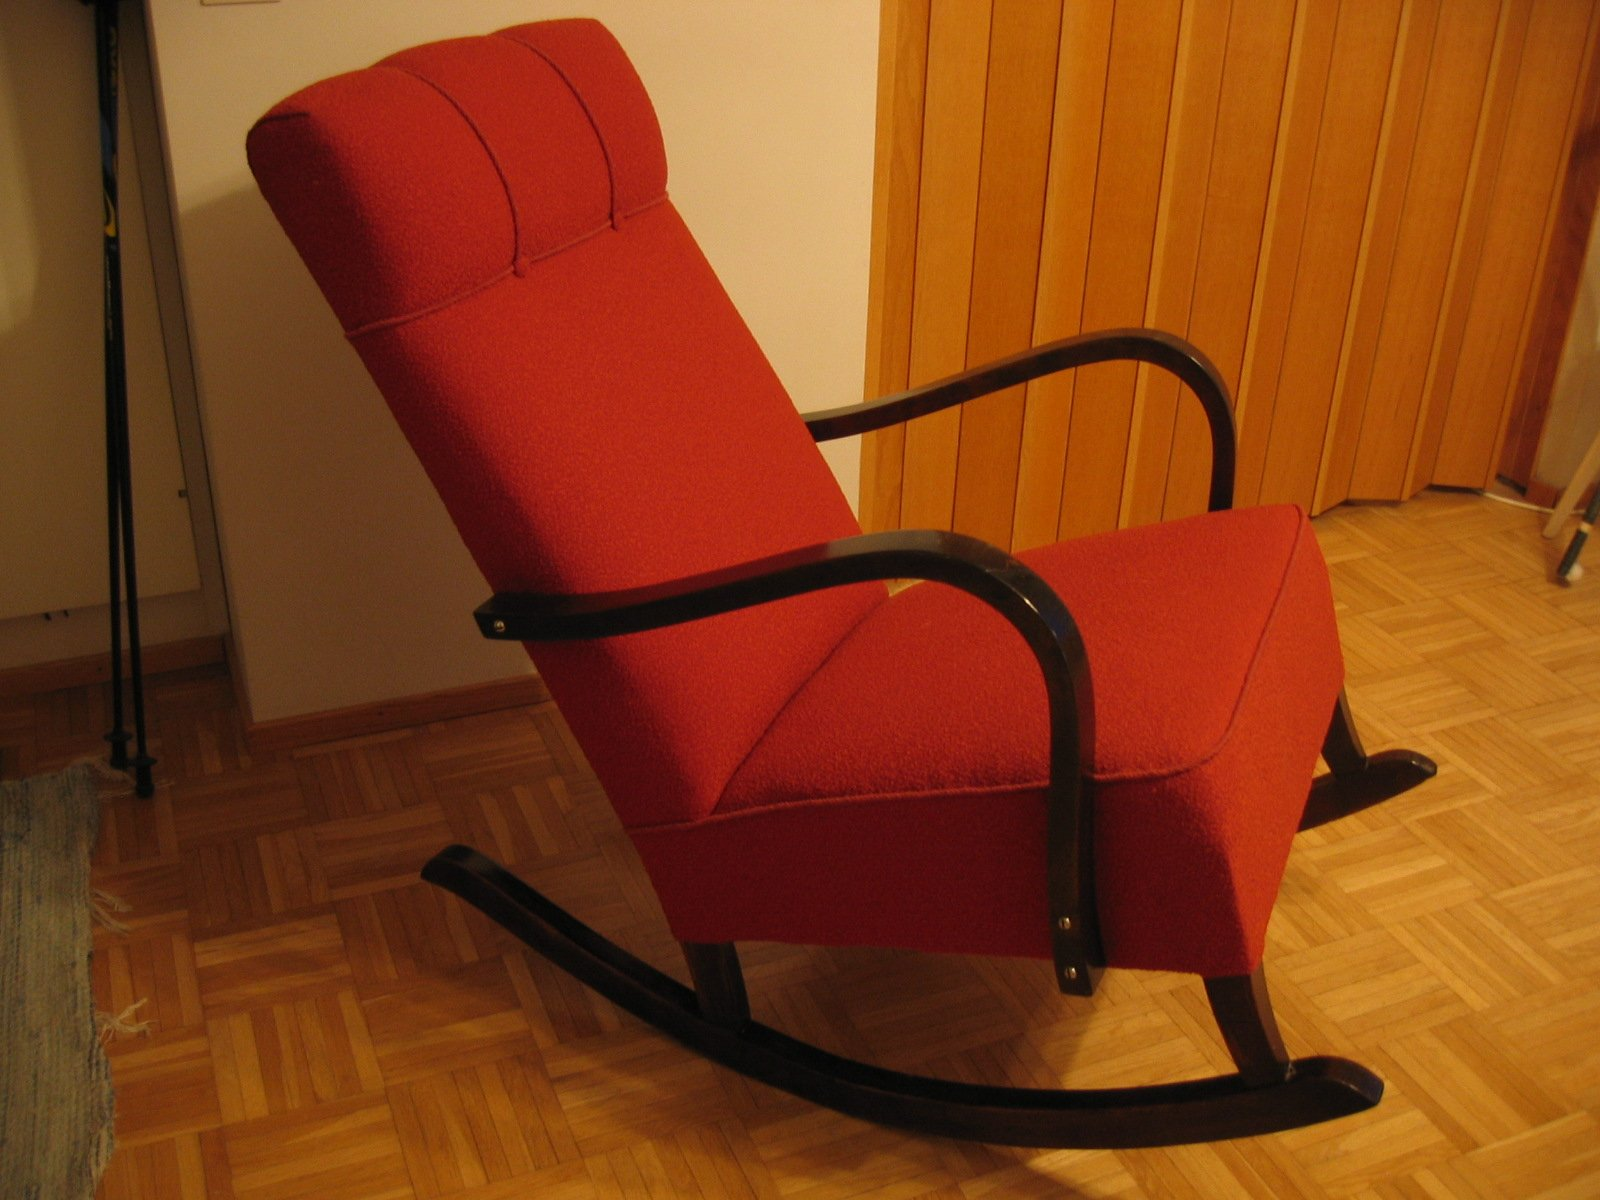 Free red rocking chair stock photo freeimages